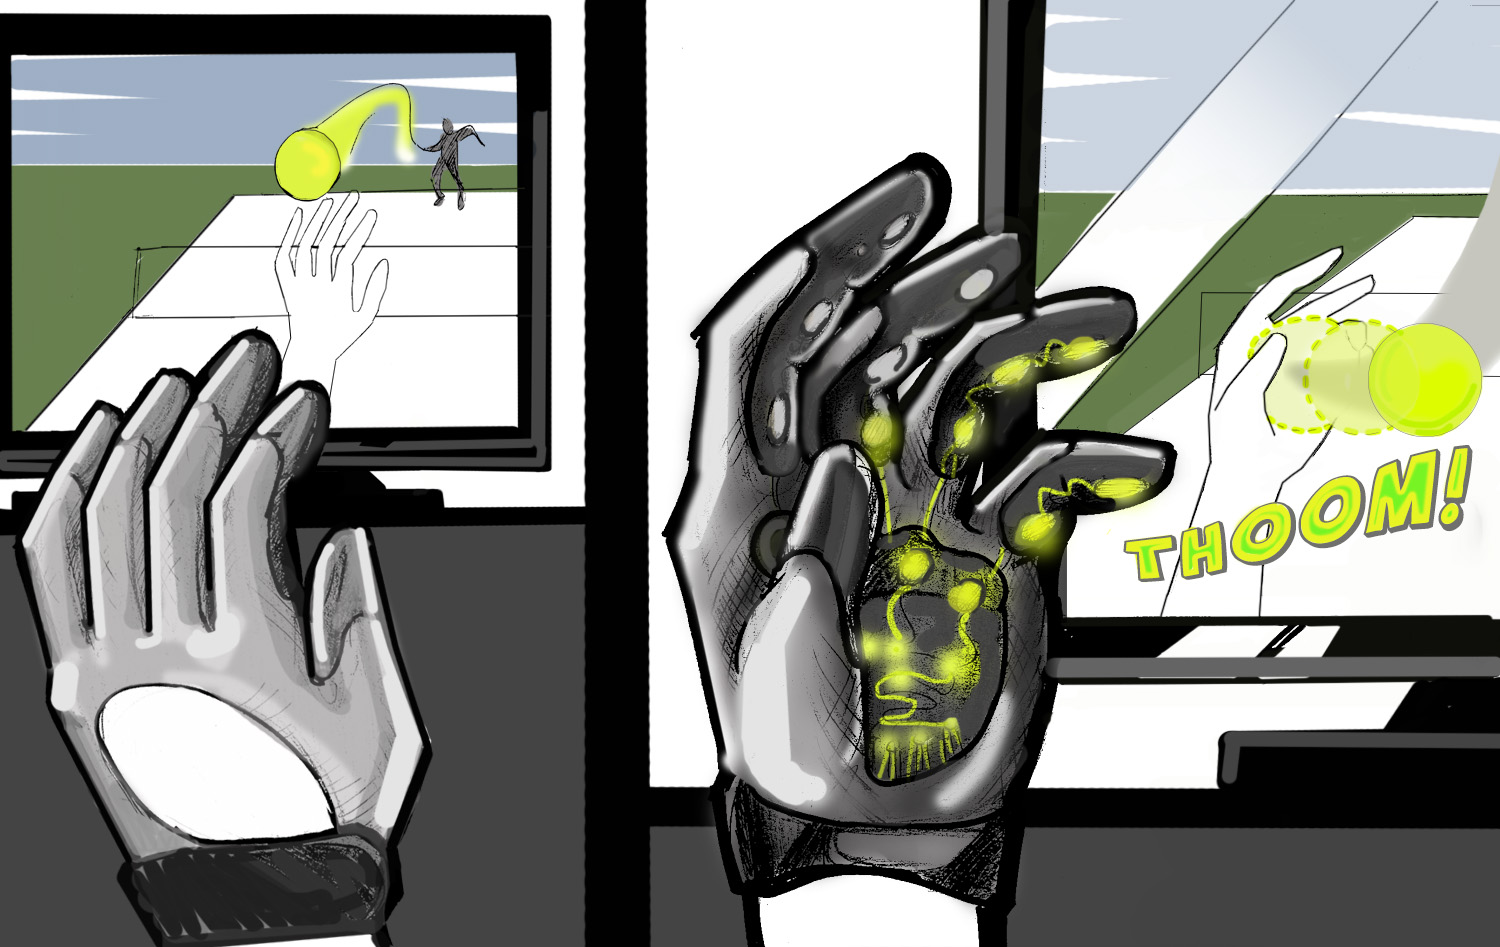 ACTIVE-Hand: Automatic Configurable Tactile Interaction in Virtual Environment